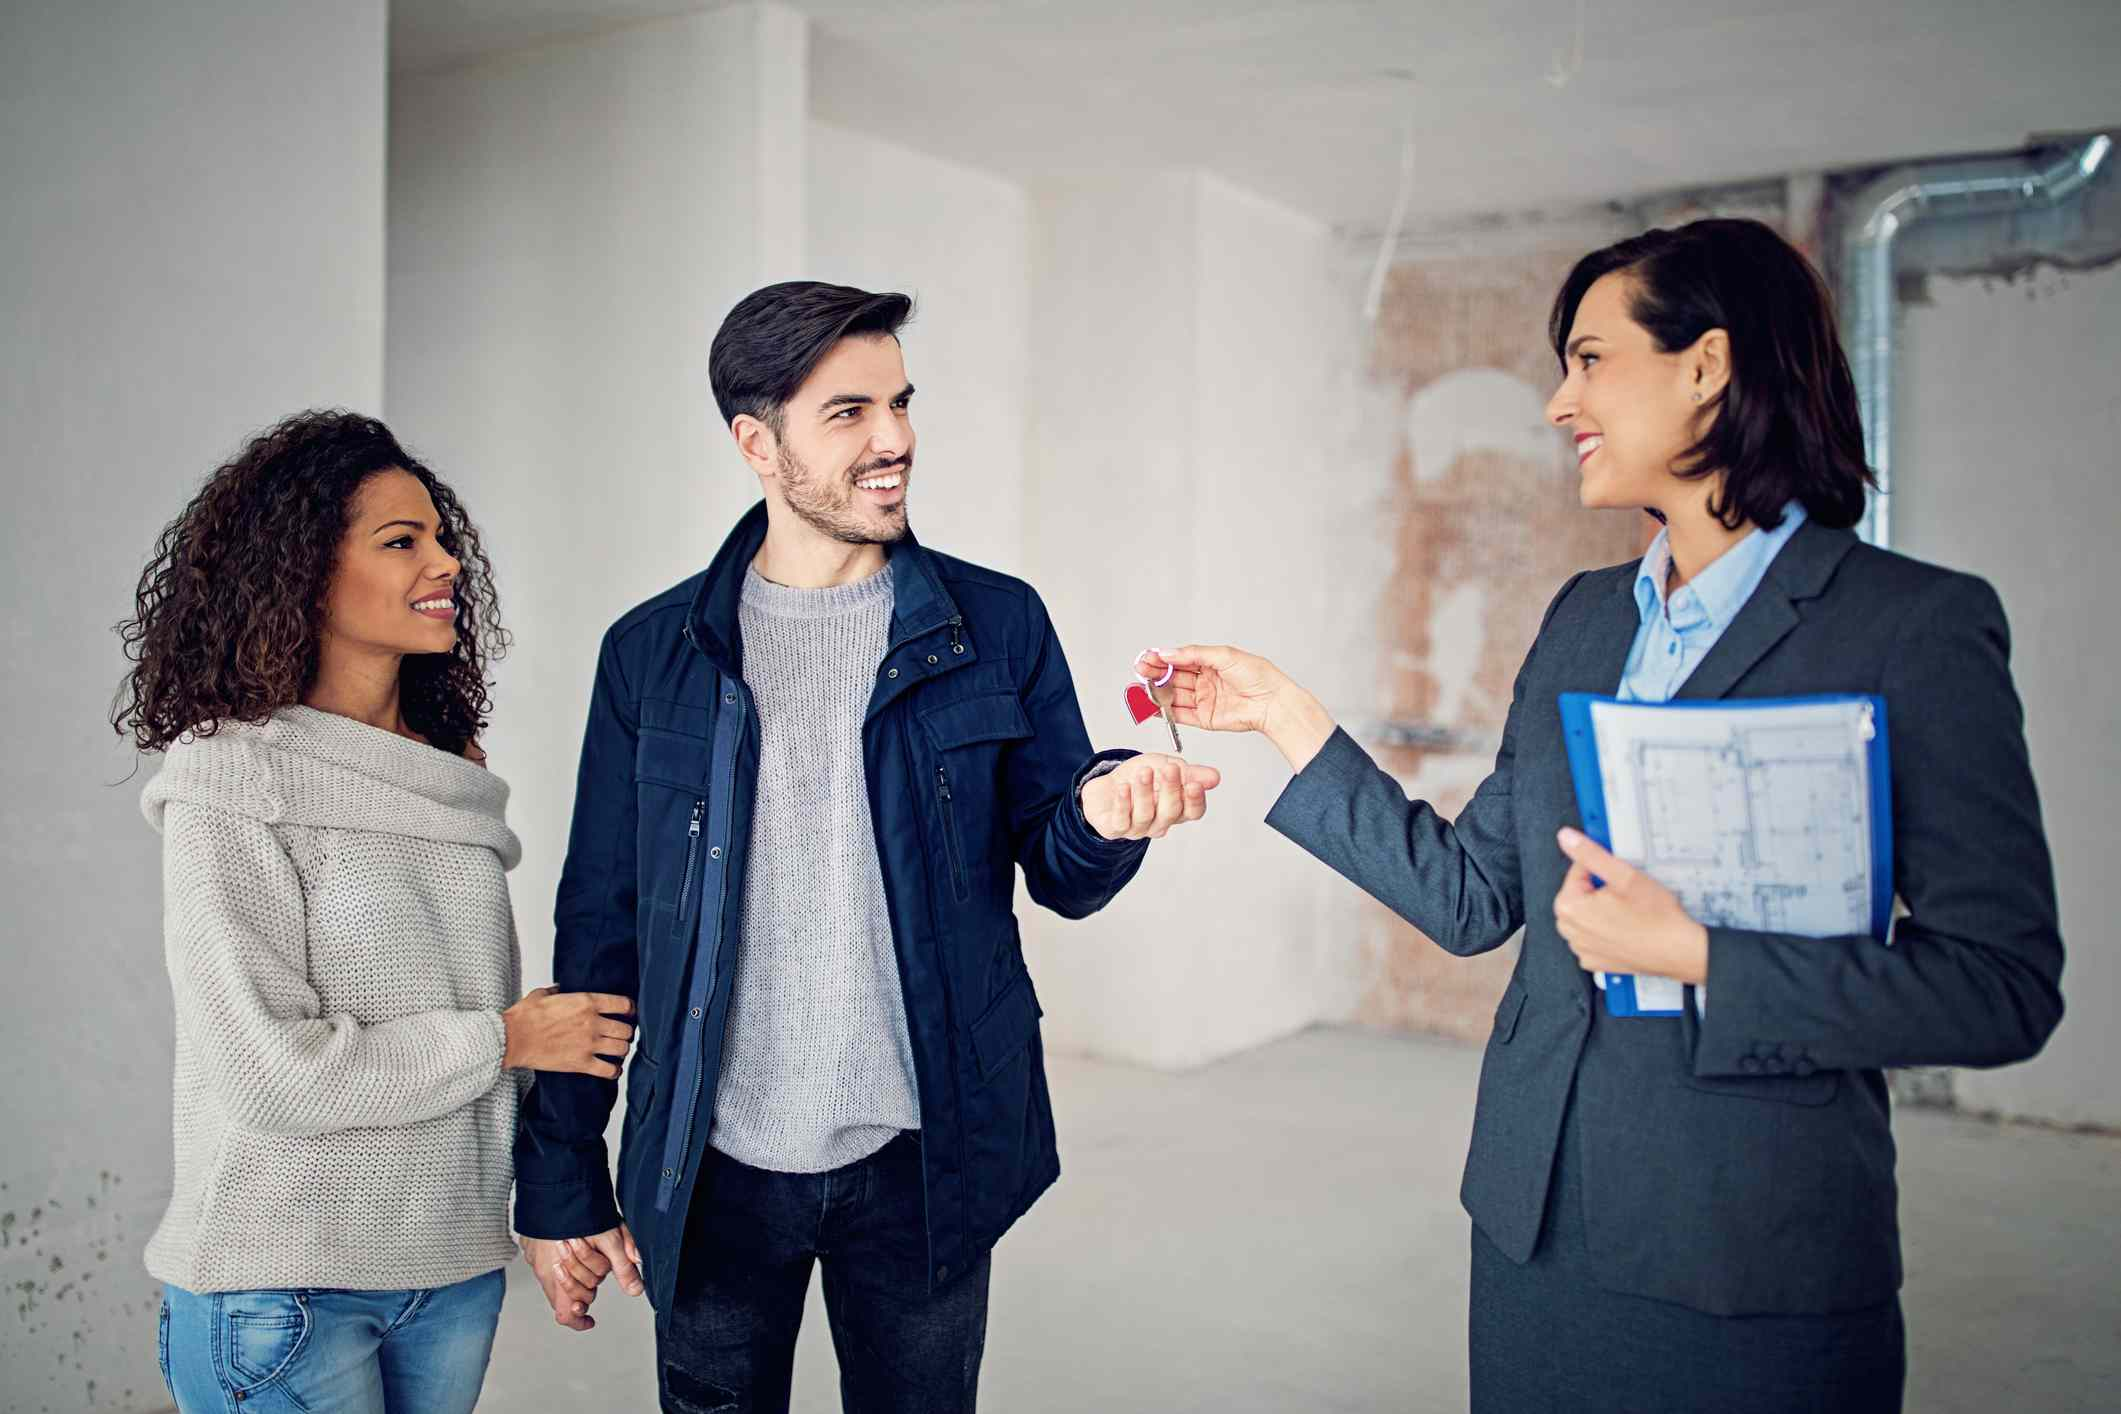 Real estate agent is giving key for a new apartment to happy couple